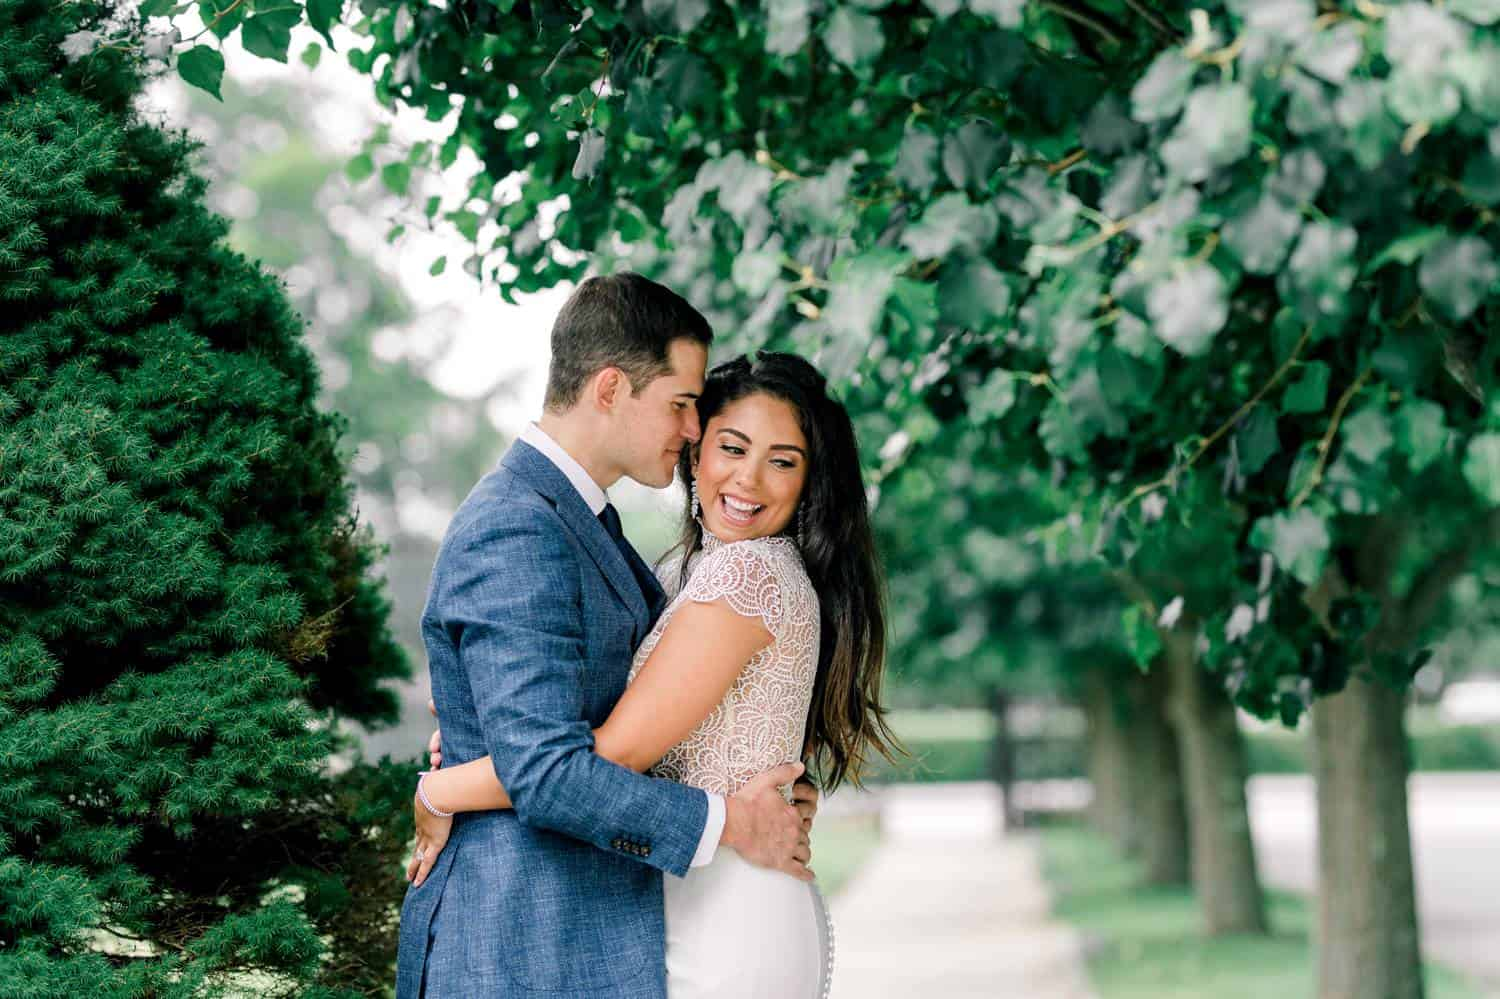 A bride and groom stand outside on a shady sidewalk. The groom embraces the bride with his face pressed against the side of her face.